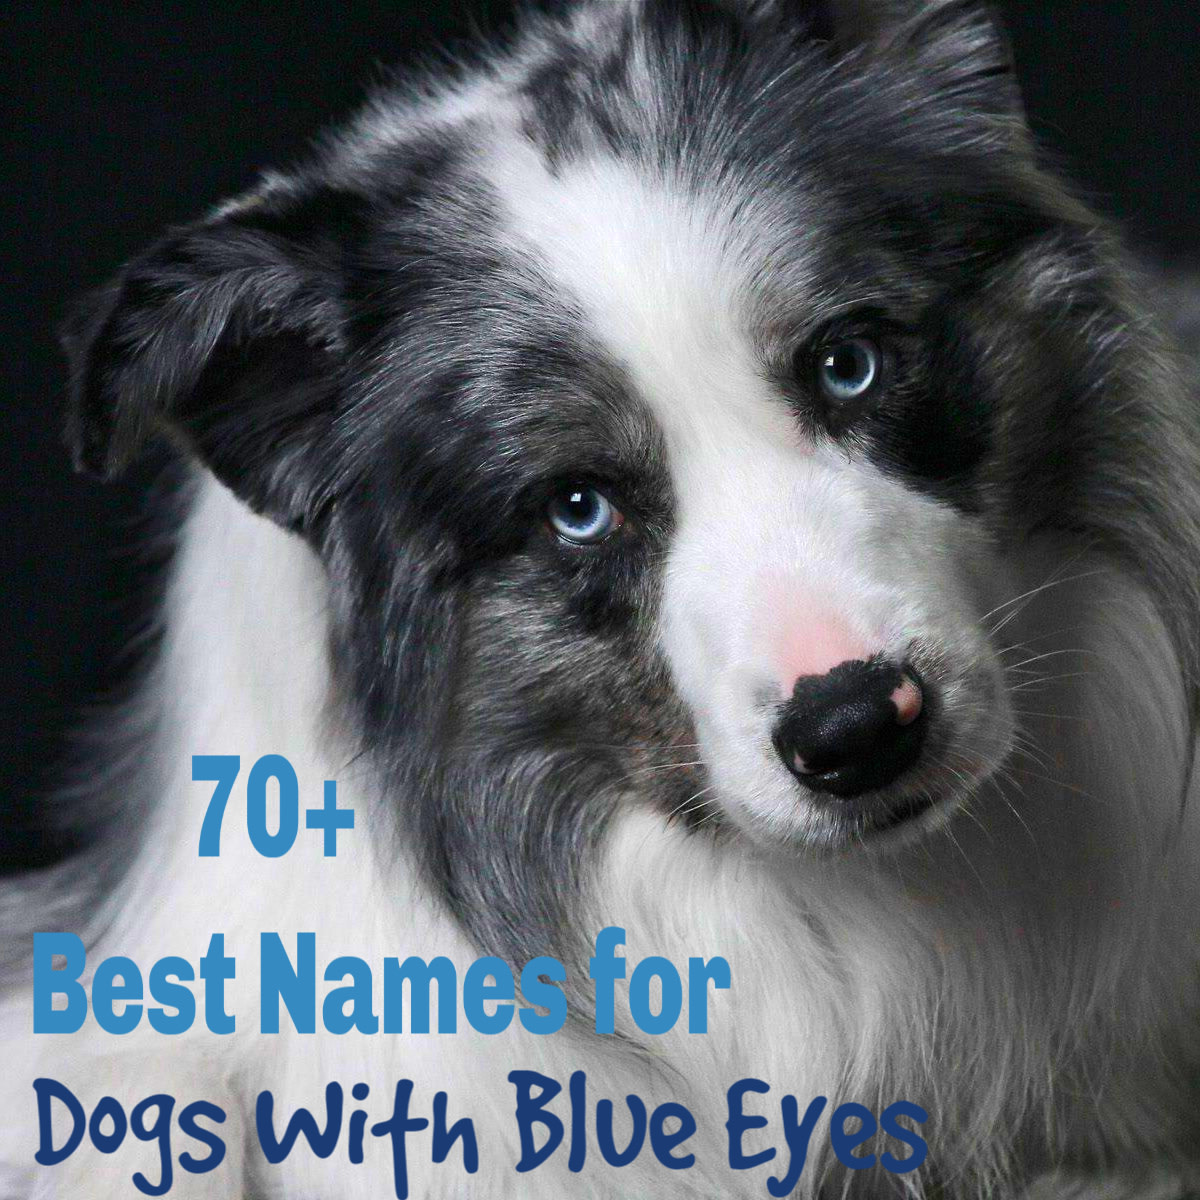 90 Unique Names For Dogs With Blue Eyes Pethelpful By Fellow Animal Lovers And Experts